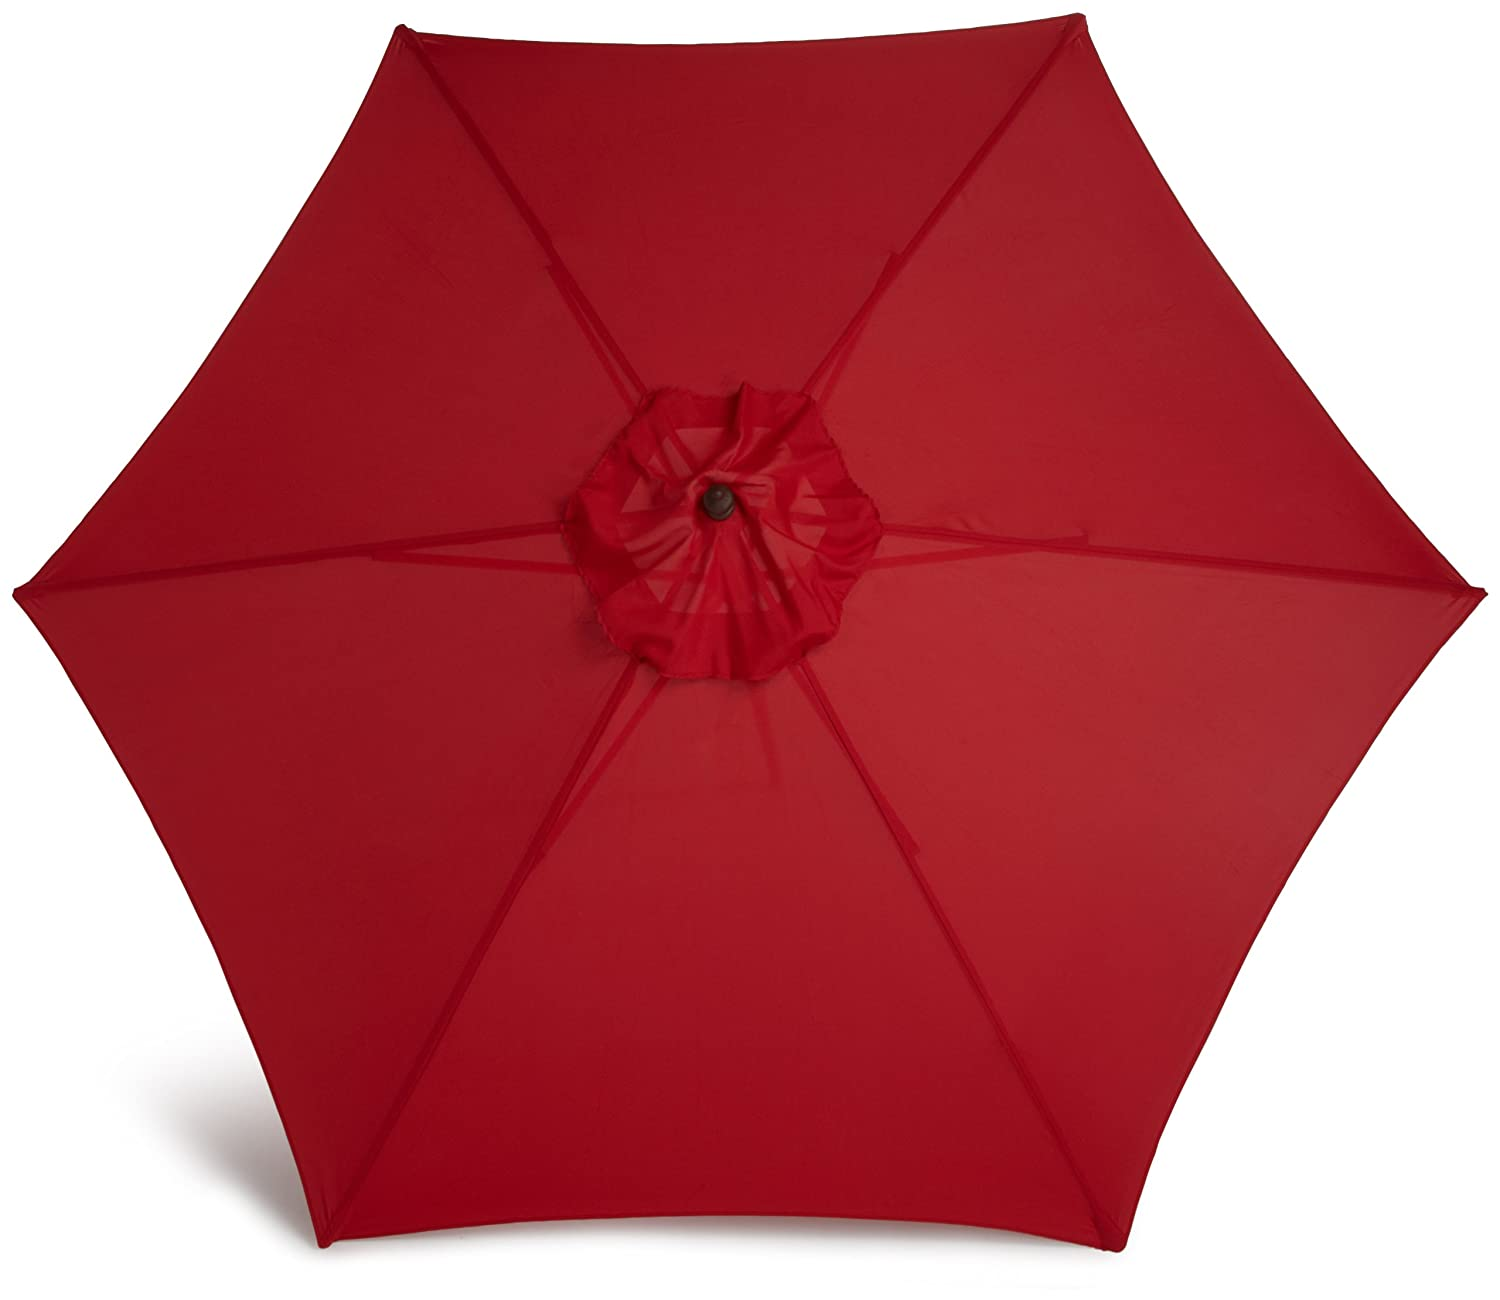 Dark Wood Market Umbrella Weather Resistant w/Polyester Cover Red ...